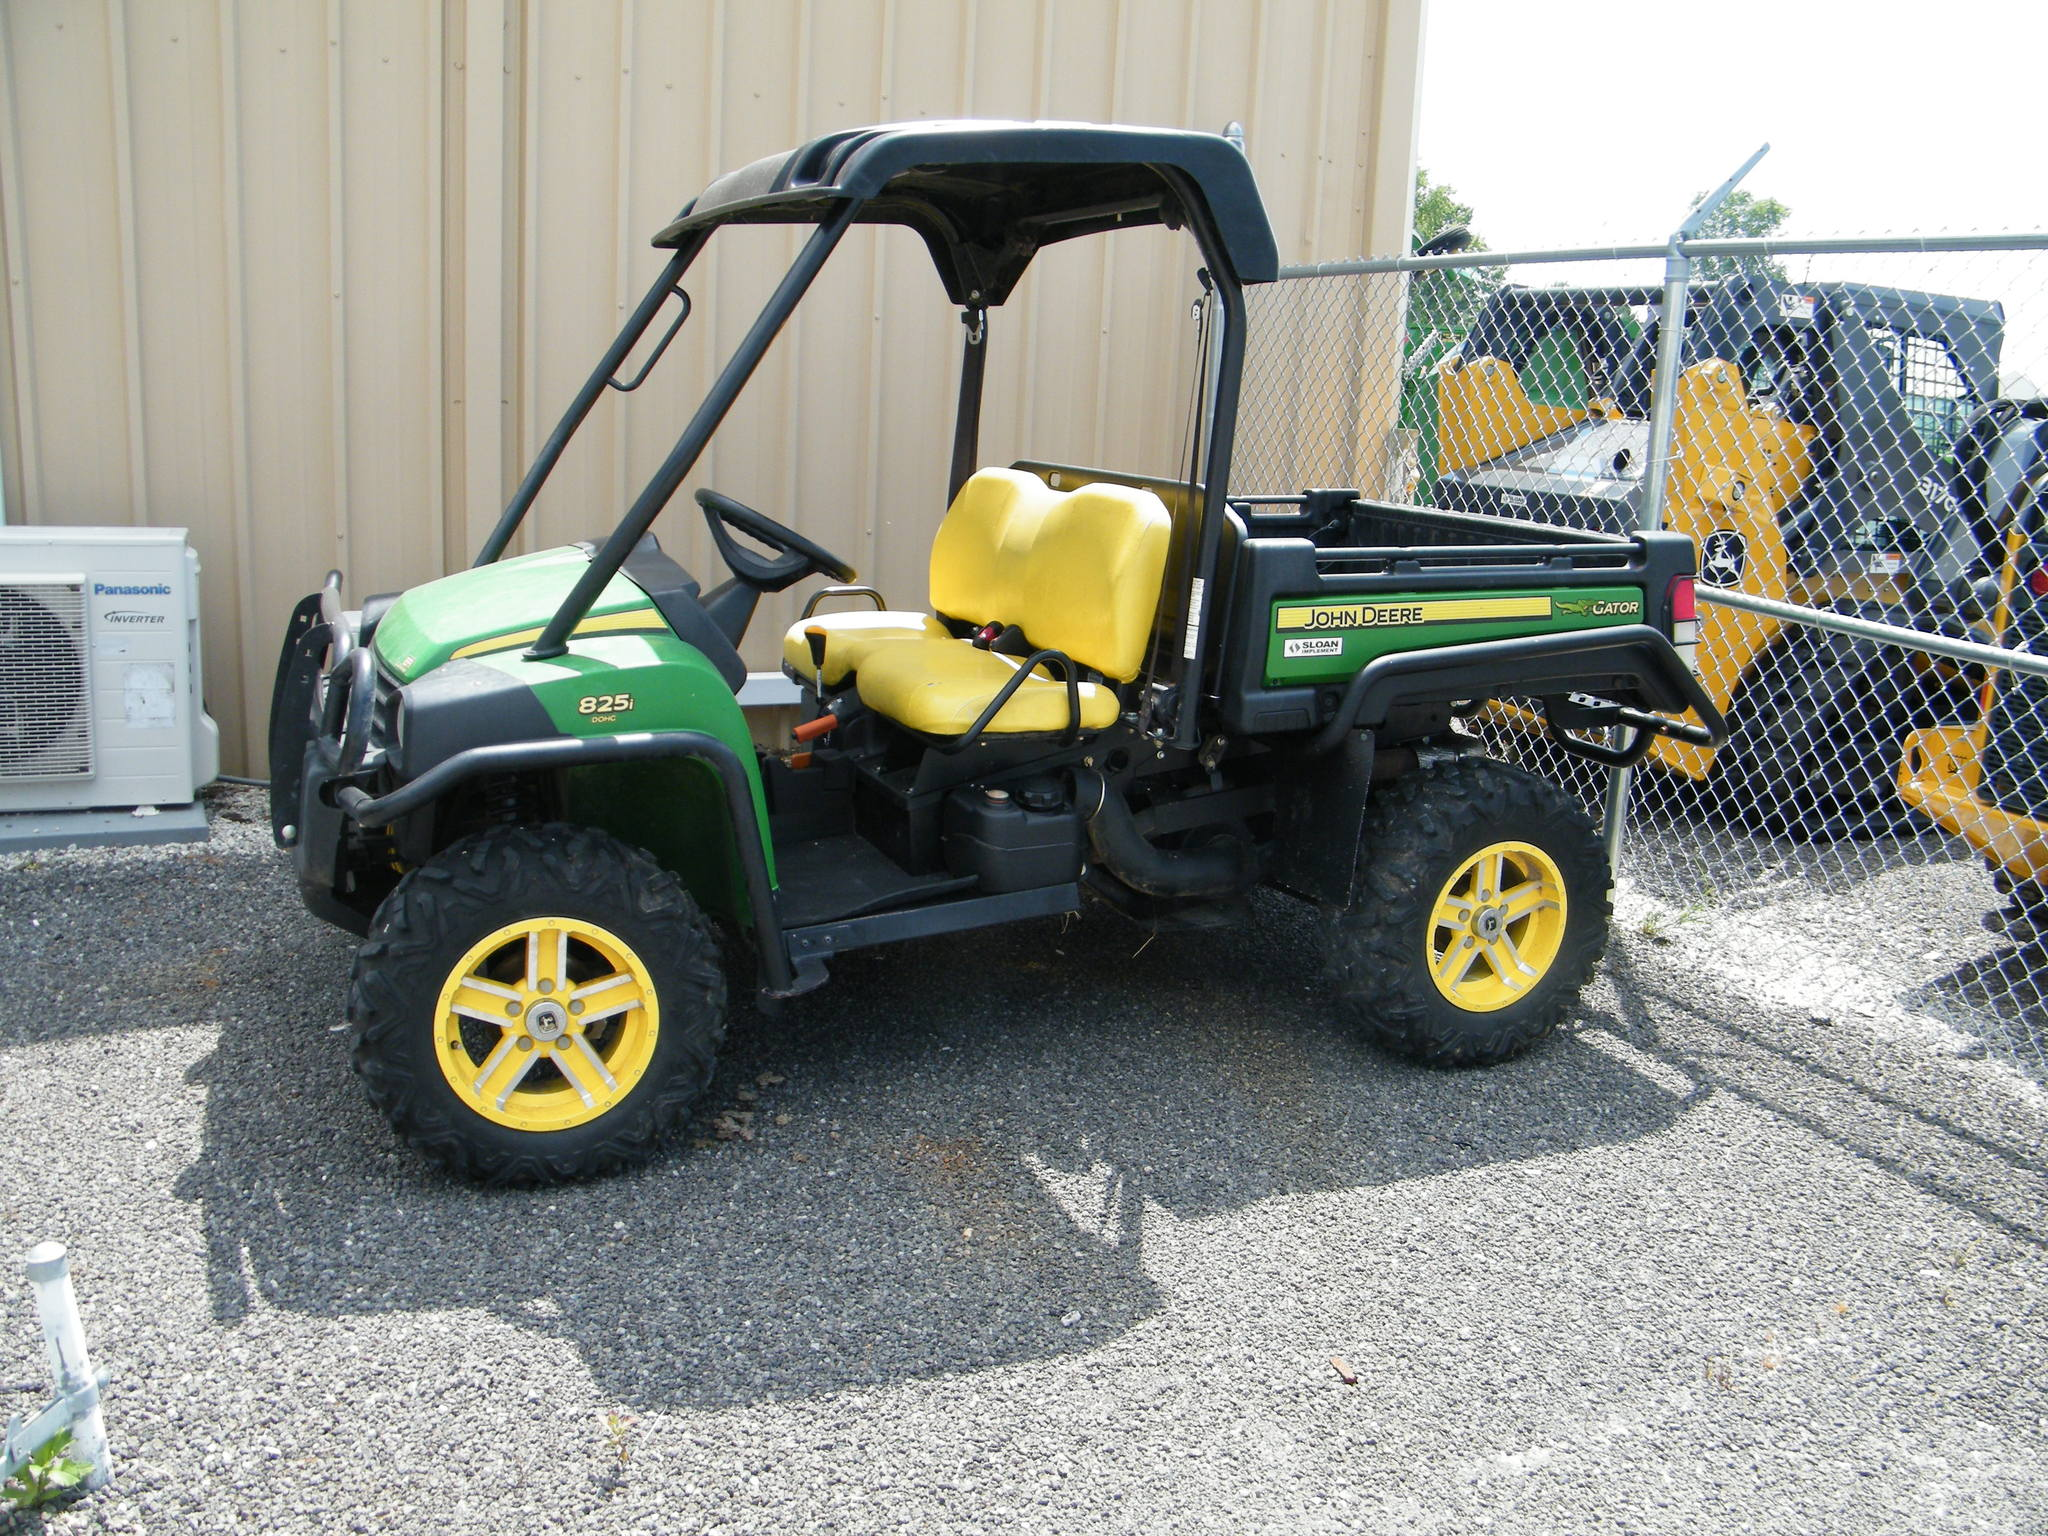 john deere gator xuv 825i atvs gators for sale 61218. Black Bedroom Furniture Sets. Home Design Ideas